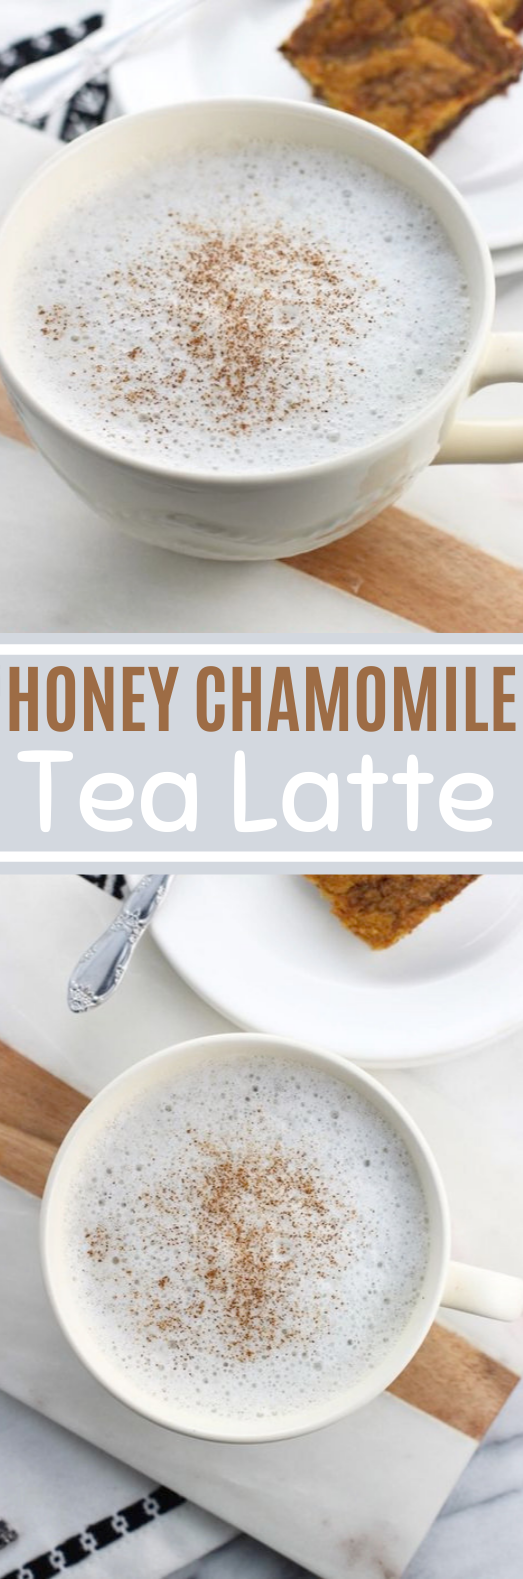 Honey Chamomile Tea Latte #drinks #healthy #latte #warm #tea